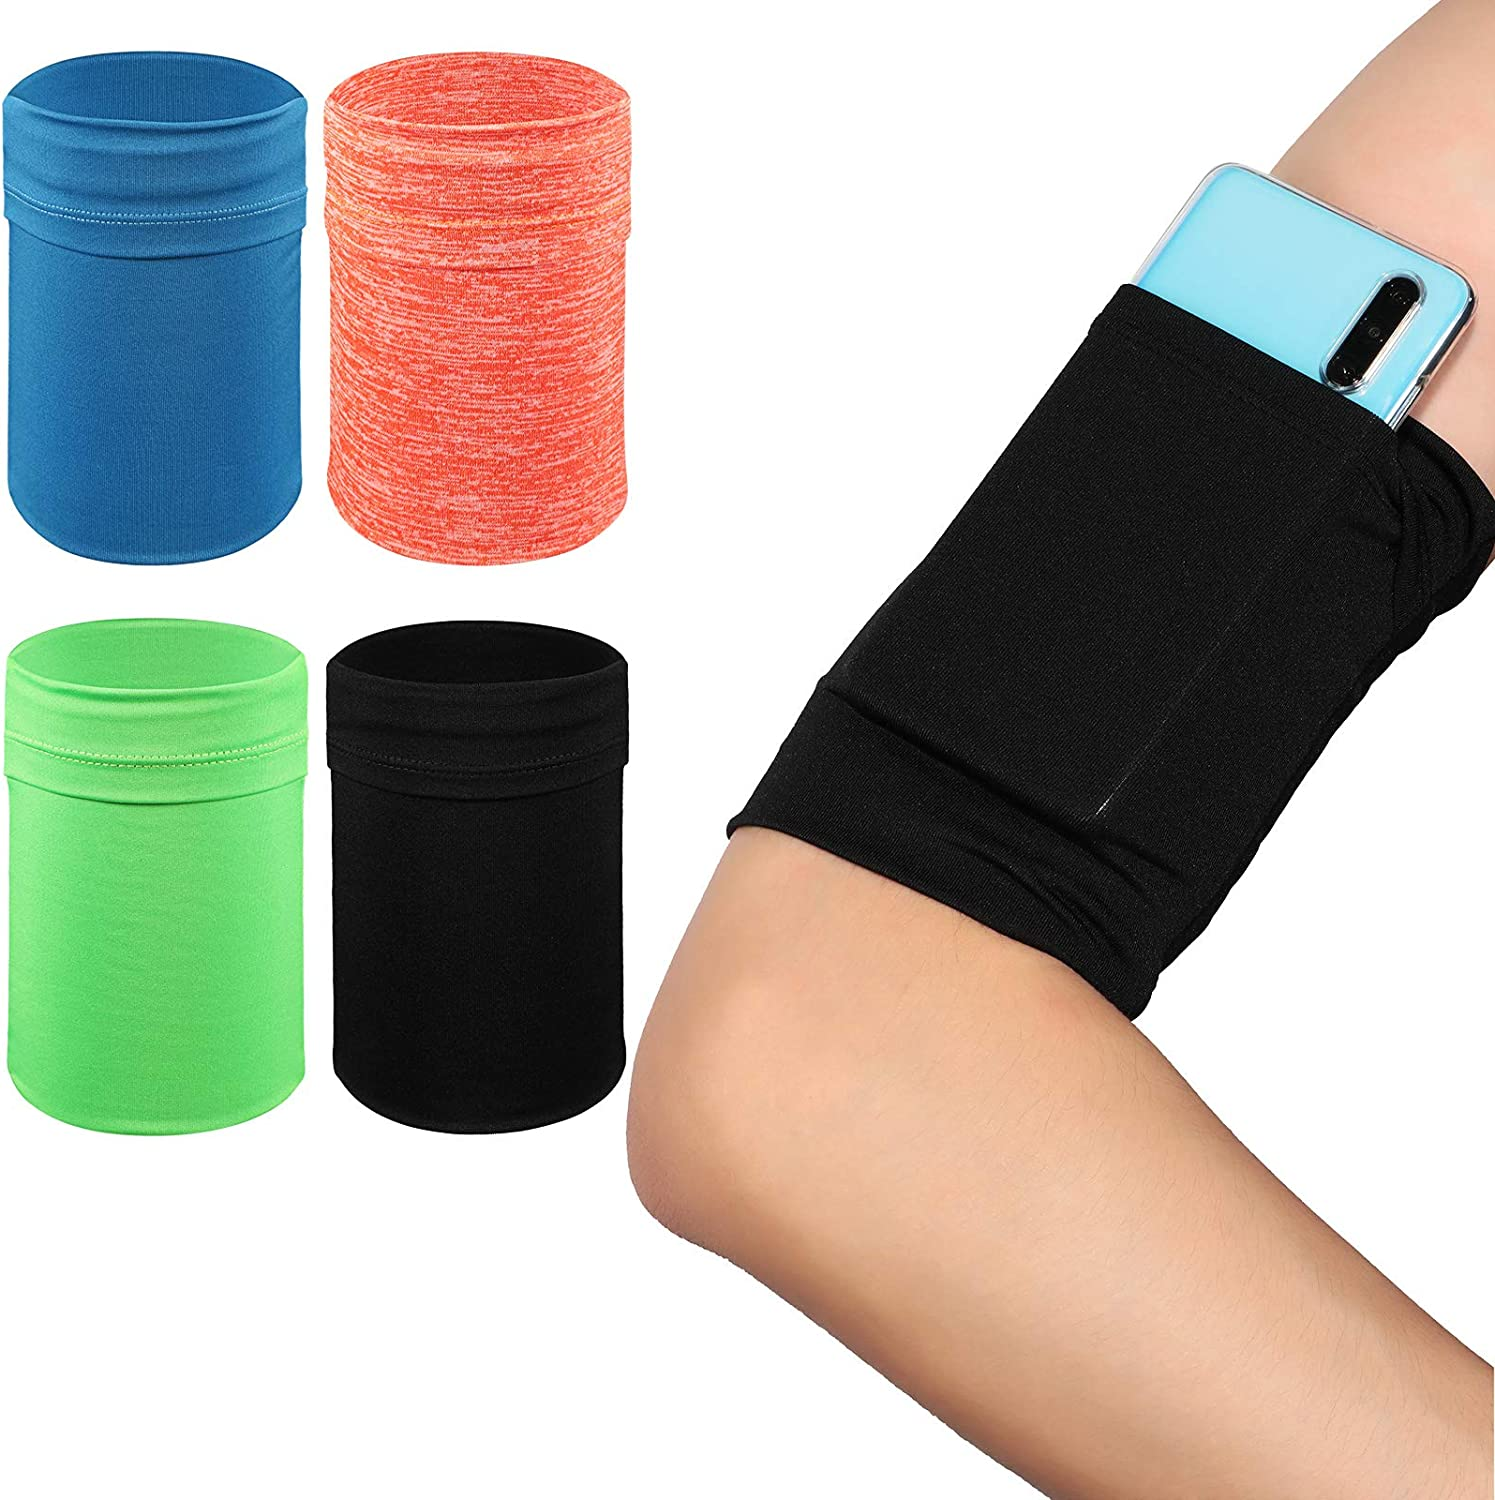 4 Pieces Arm Strap Wristband Holder Running Phone Arm Holder Phone Armband Wristband Phone Running Arm Raglan Sleeve Pouch Sport Mobile Holder Fits up to 6 Inch Phone, 4 Colors